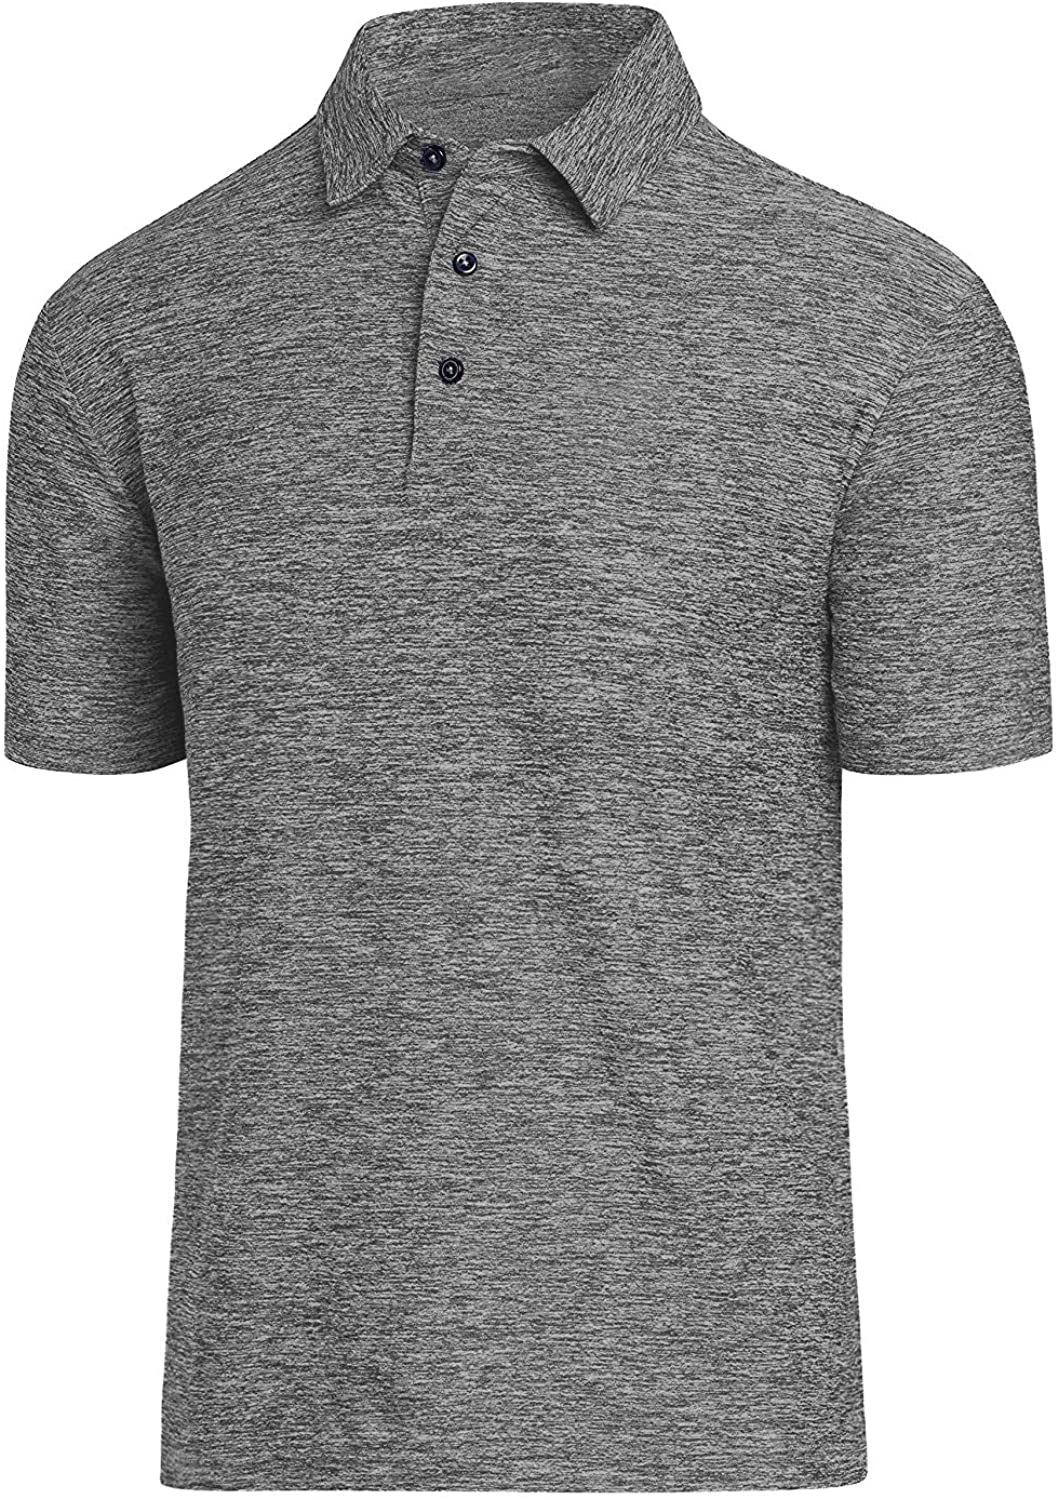 Men's Dry Fit Golf Polo Shirt: Clothing